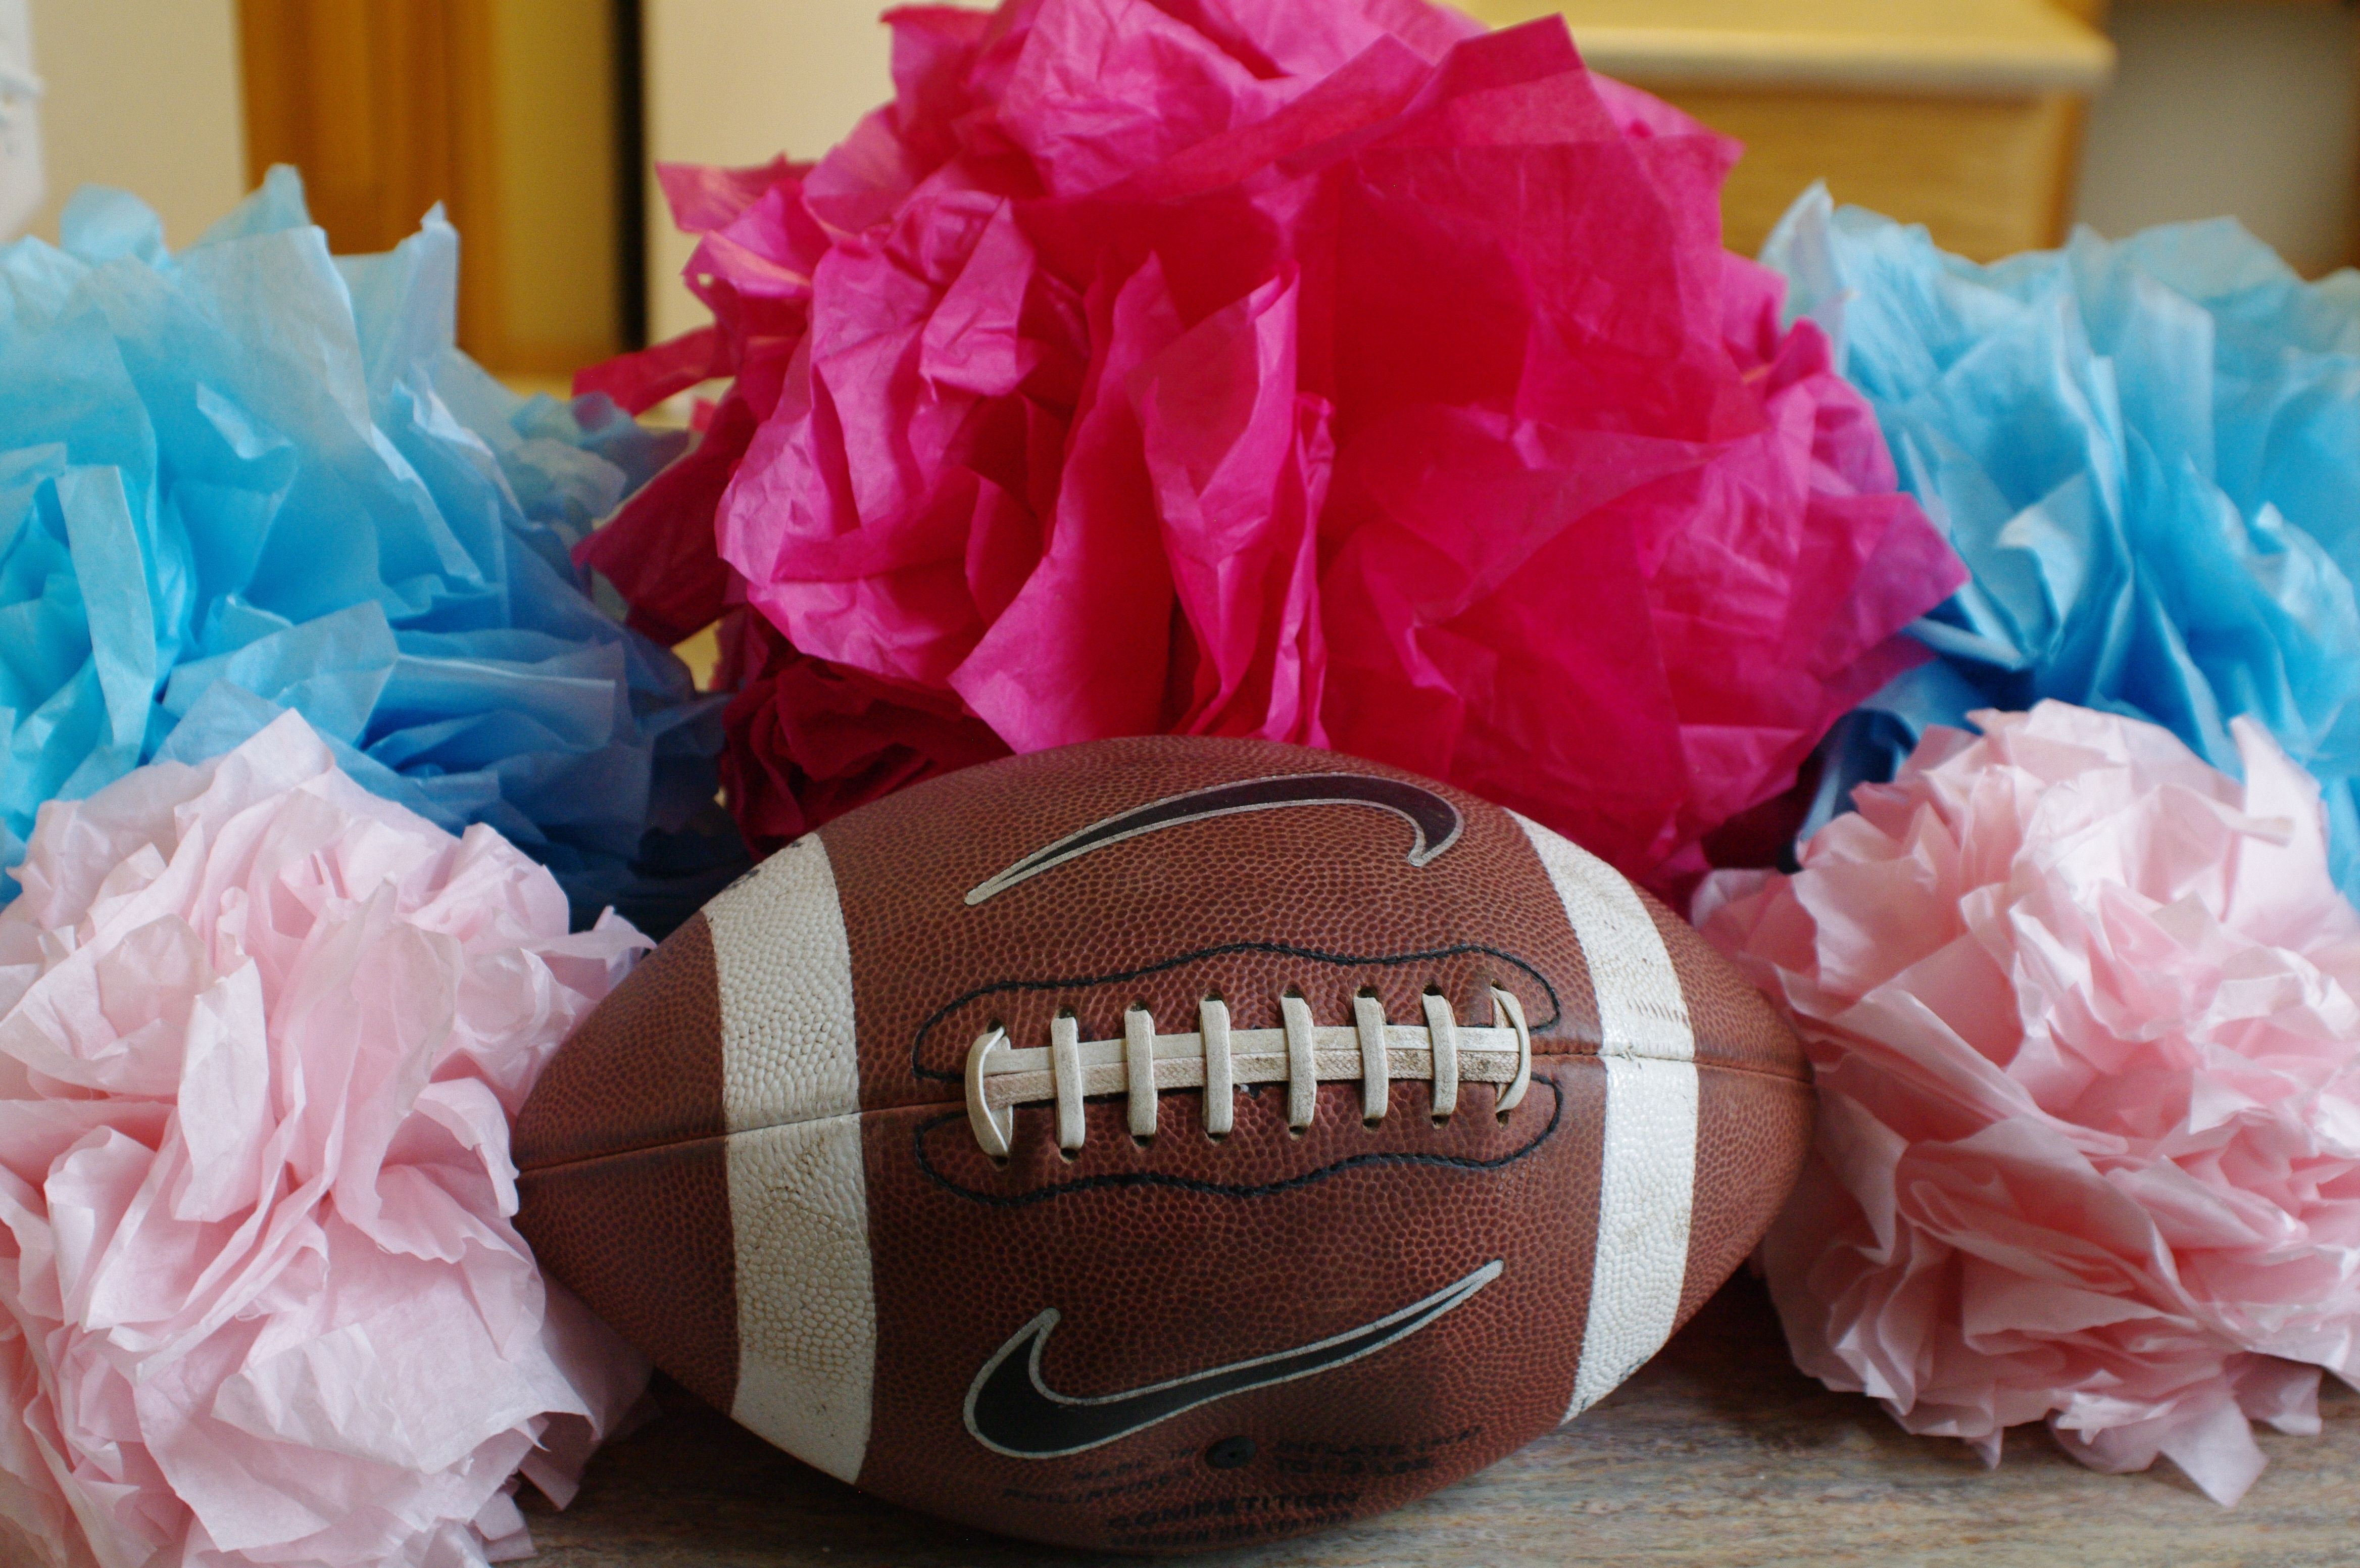 Pin By Shelby Stratton On Gender Reveal Party Gender Reveal Party Football Gender Reveal Party Baby Shower Gender Reveal